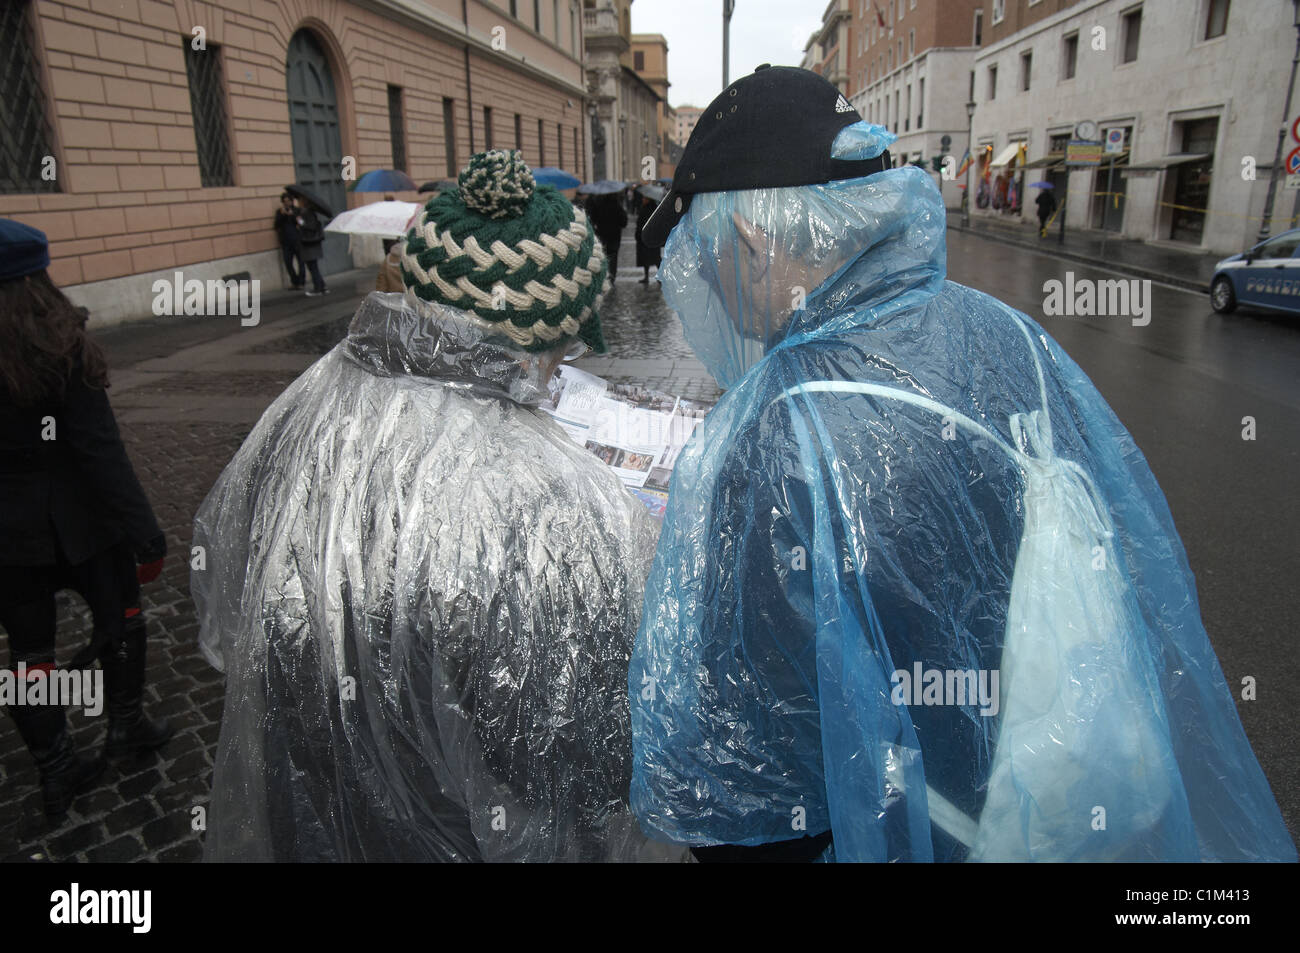 Two elderly lost wet tourists in plastic rain ponchos get wet as they try to read a map in Rome, Italy, Europe - Stock Image